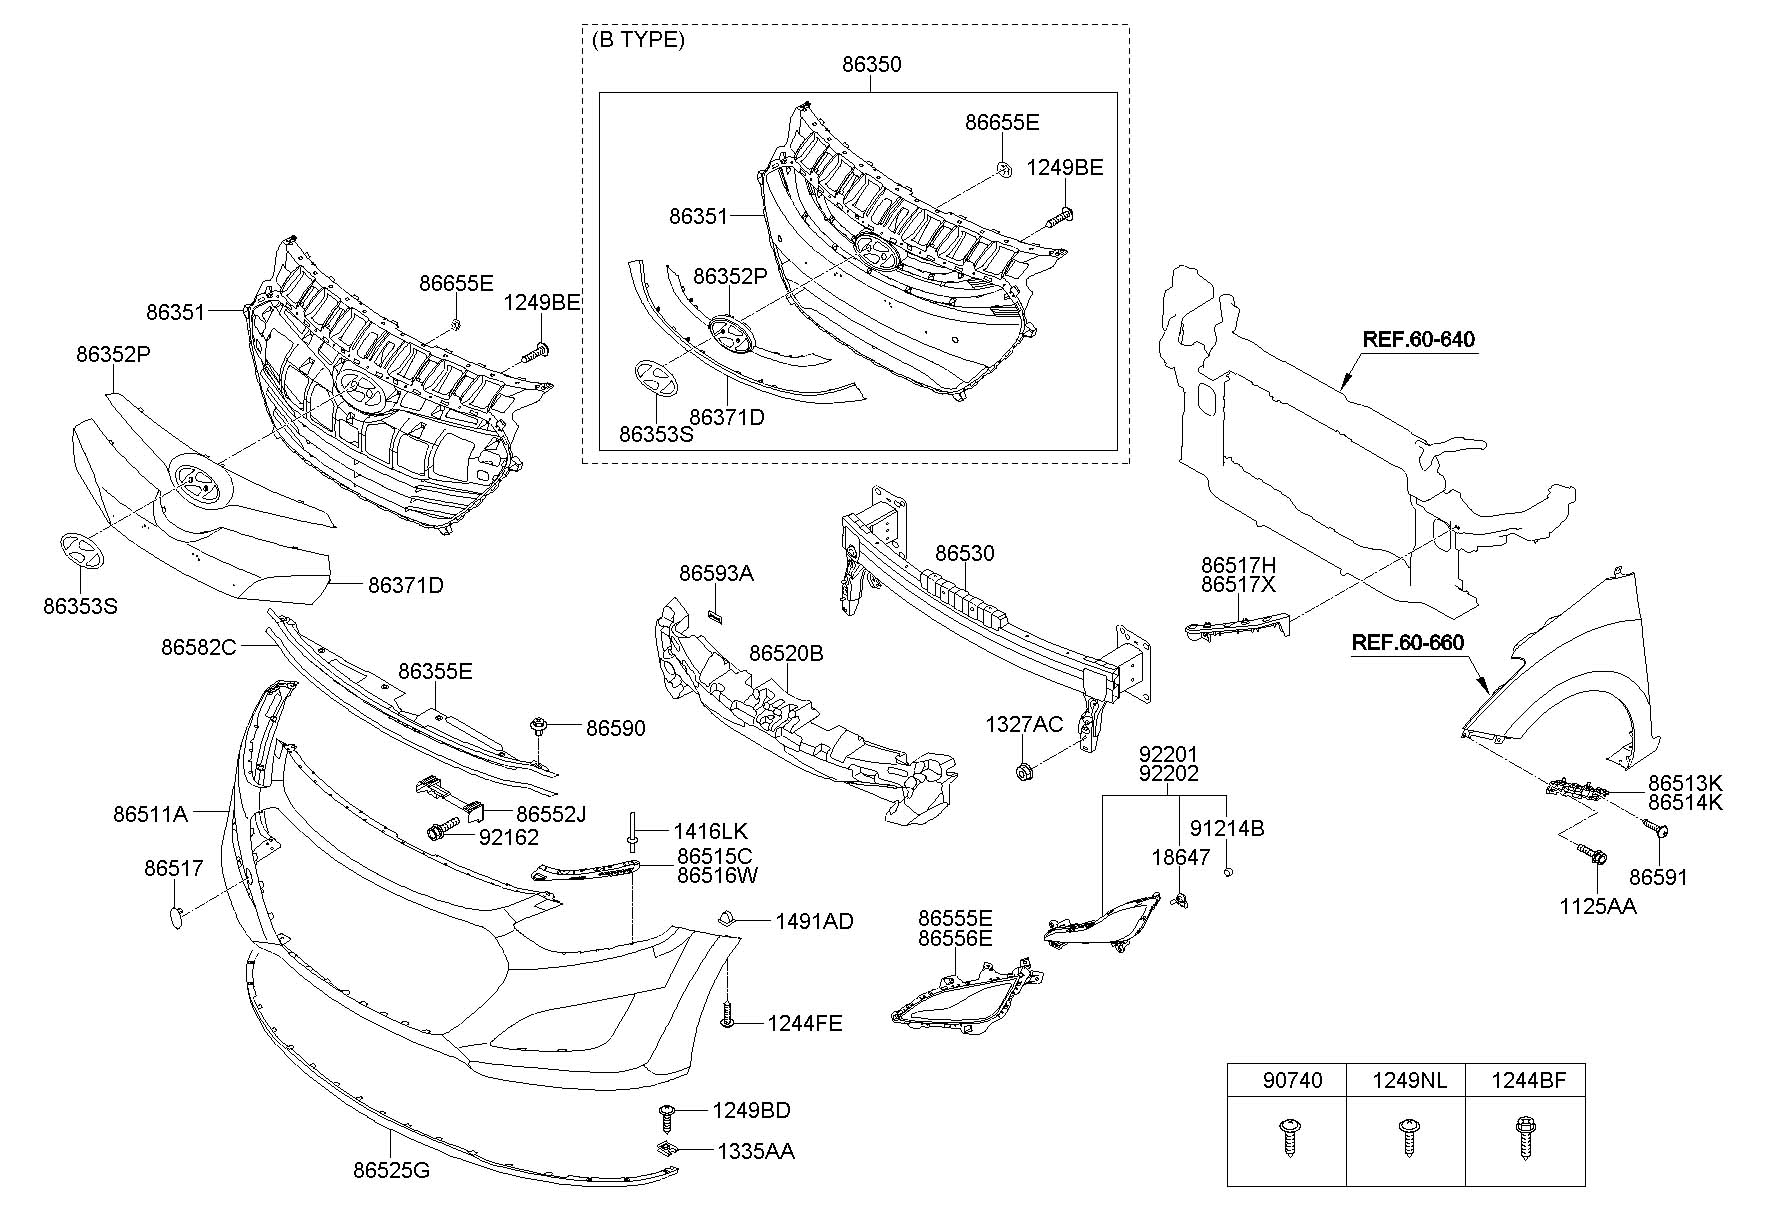 hight resolution of 2012 hyundai accent parts diagram within hyundai wiring 2012 hyundai accent parts catalog 2012 hyundai accent parts diagram